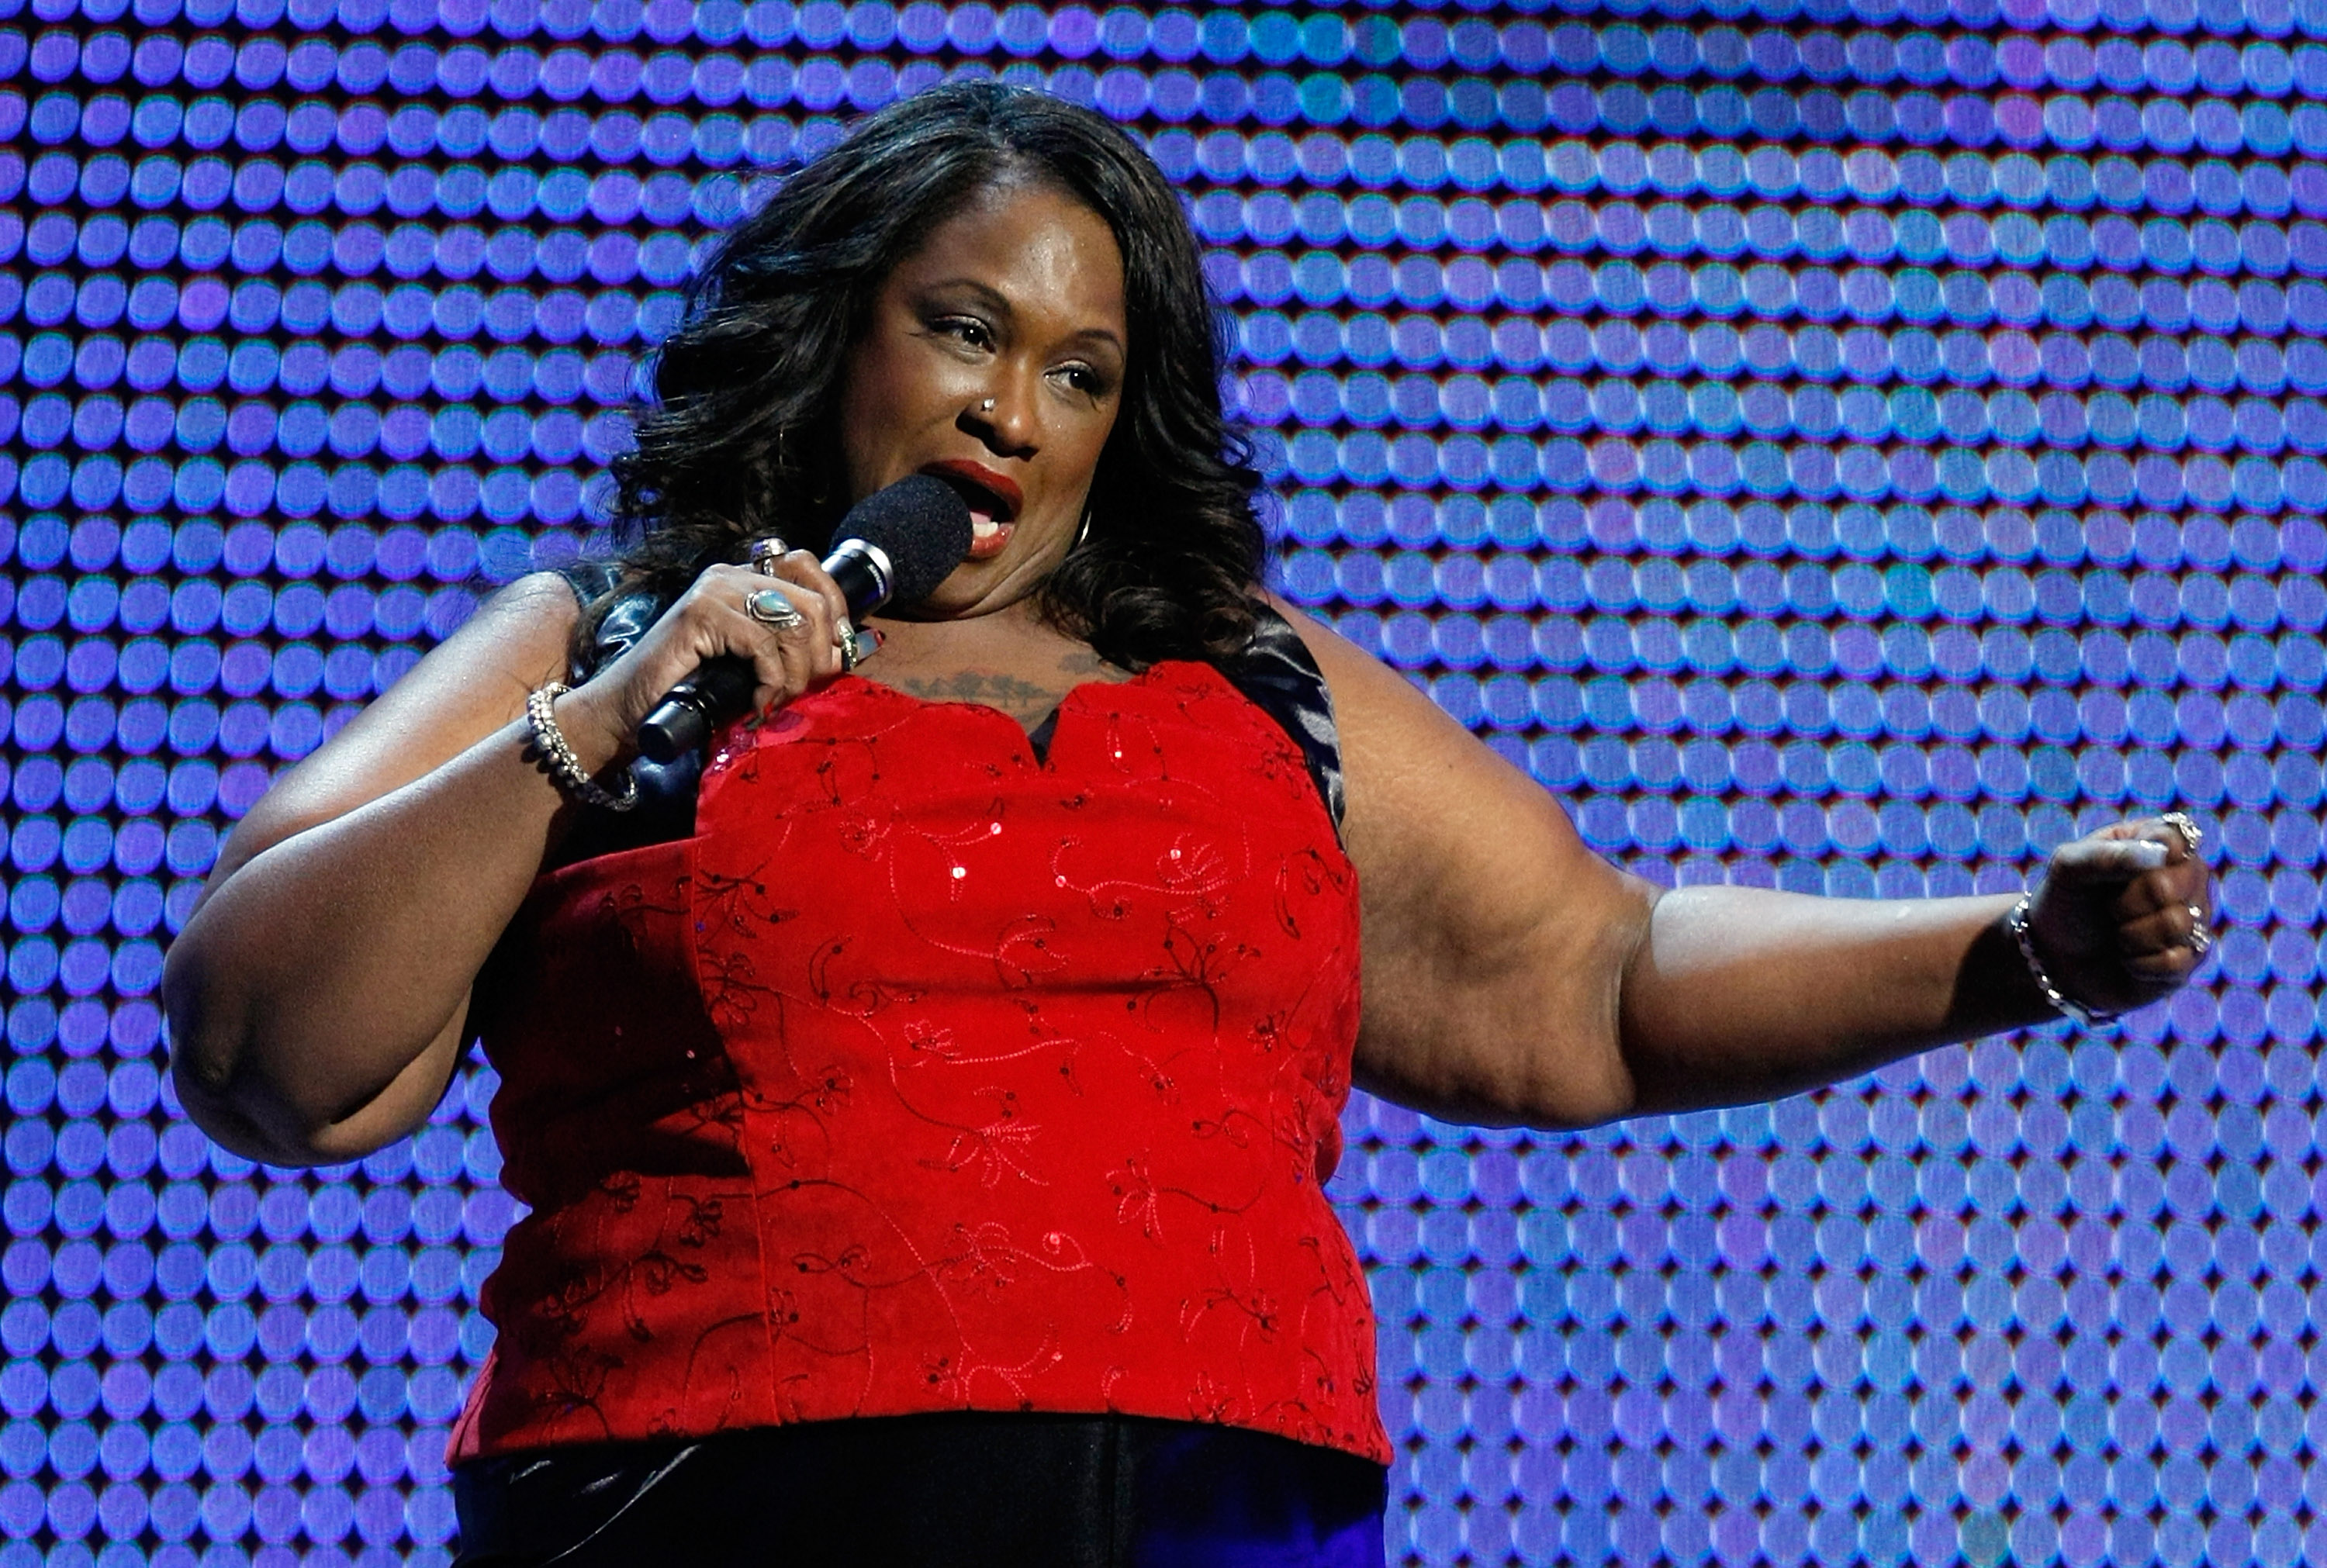 Thea Vidale will perform at the Groove Lounge. (Getty Images)